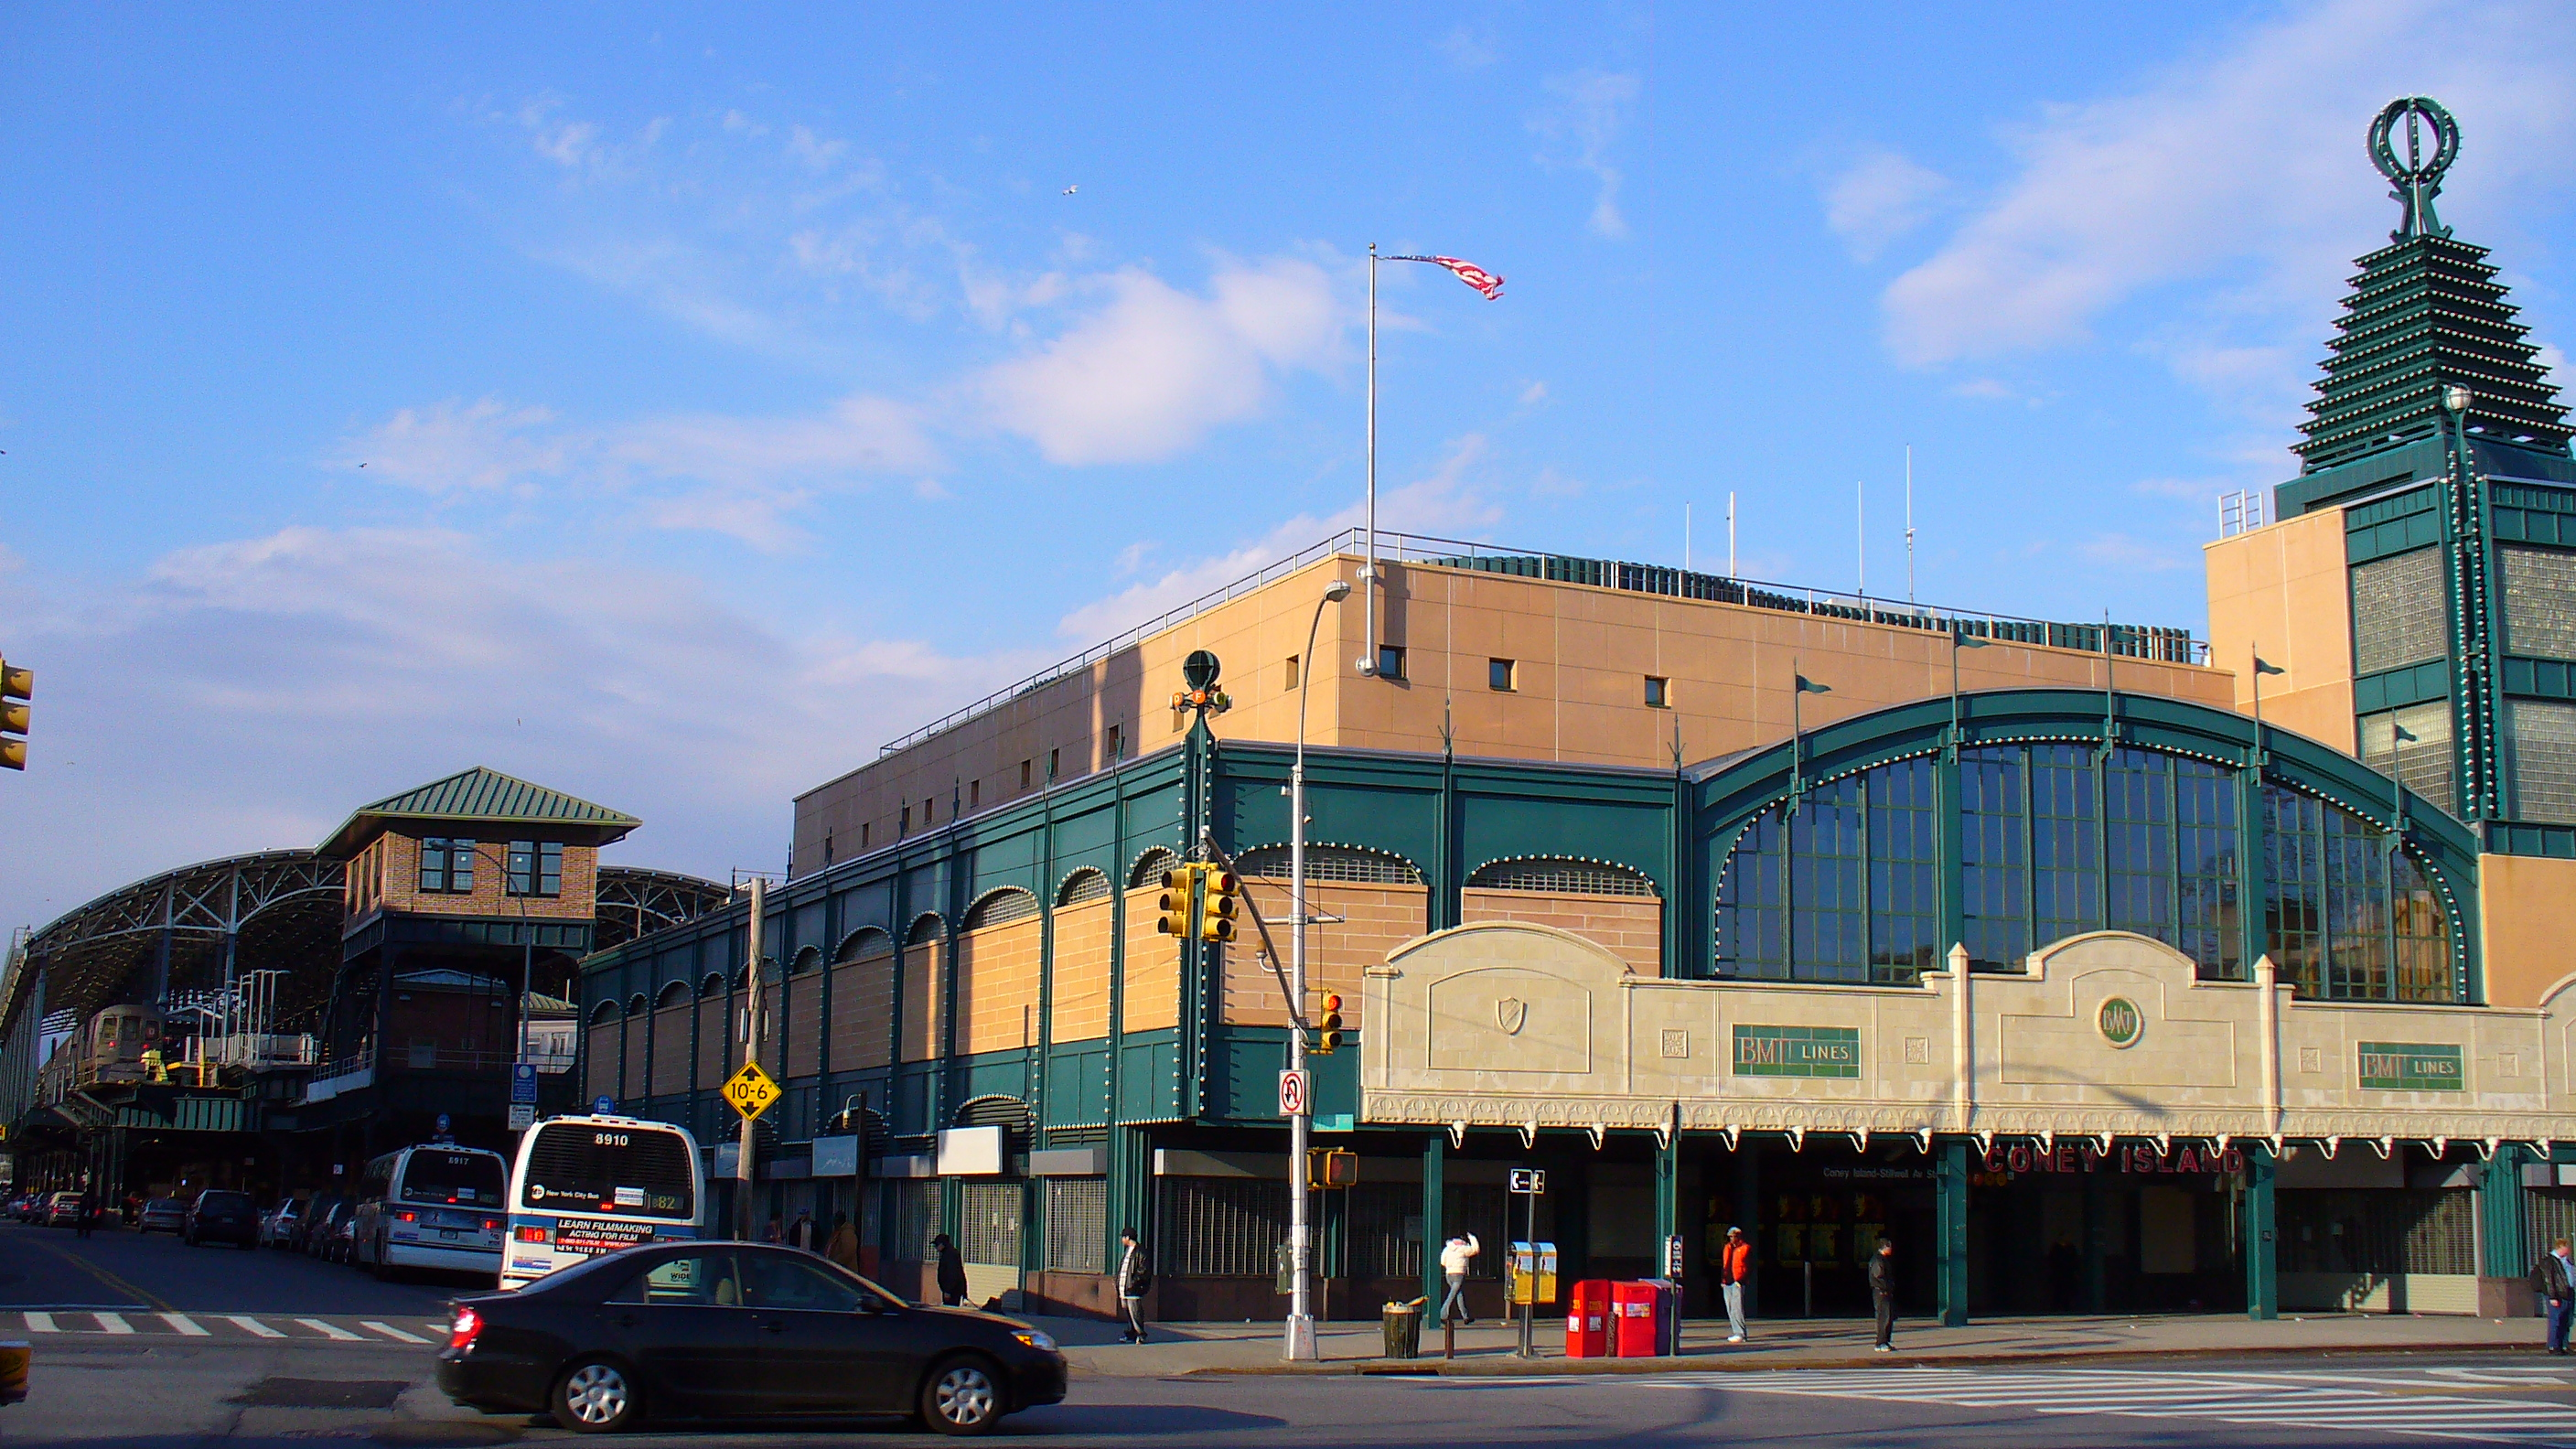 Coney Island–Stillwell Avenue station - Wikipedia